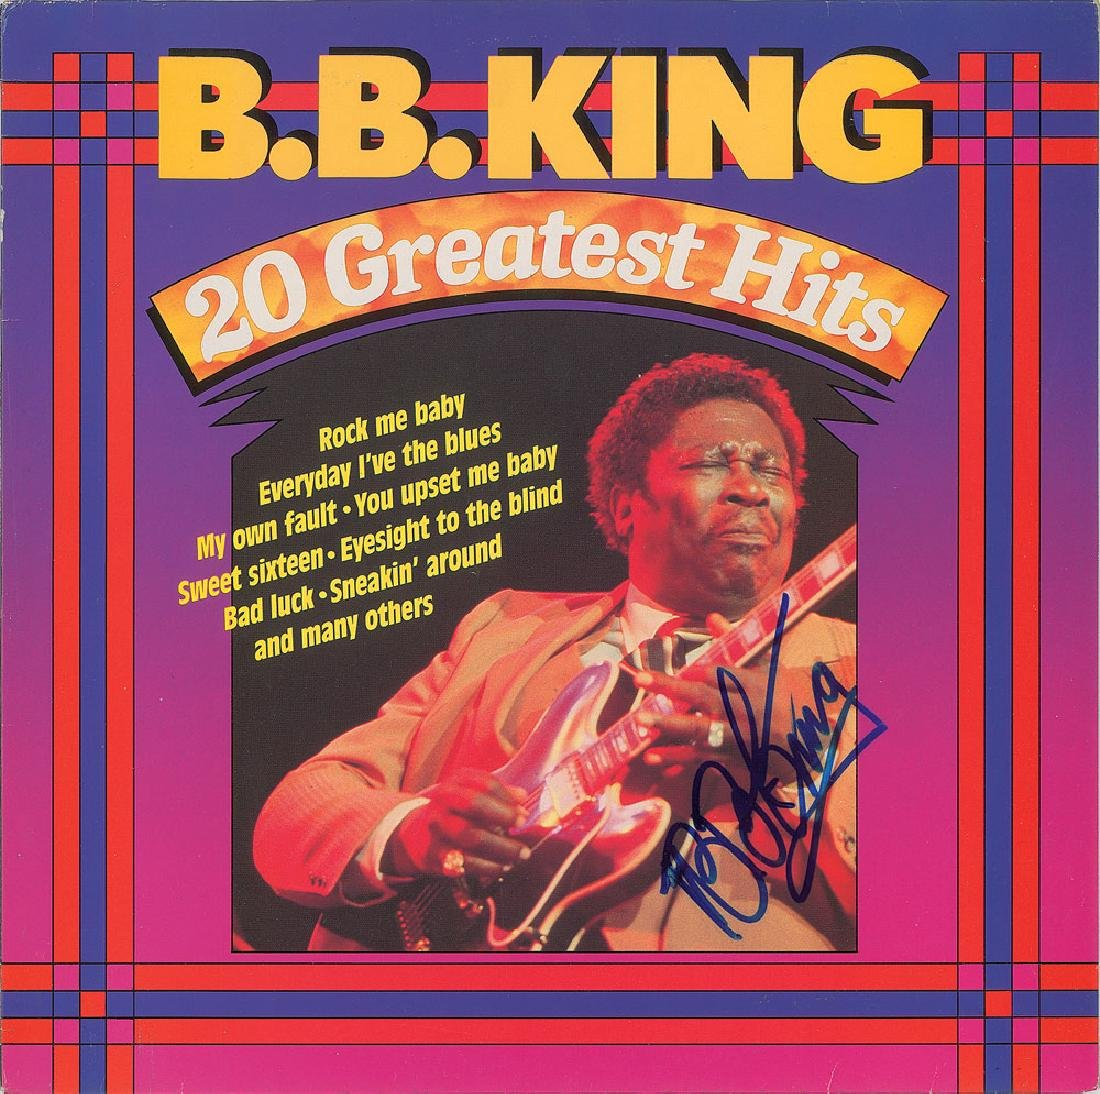 B. B. King Signed Album